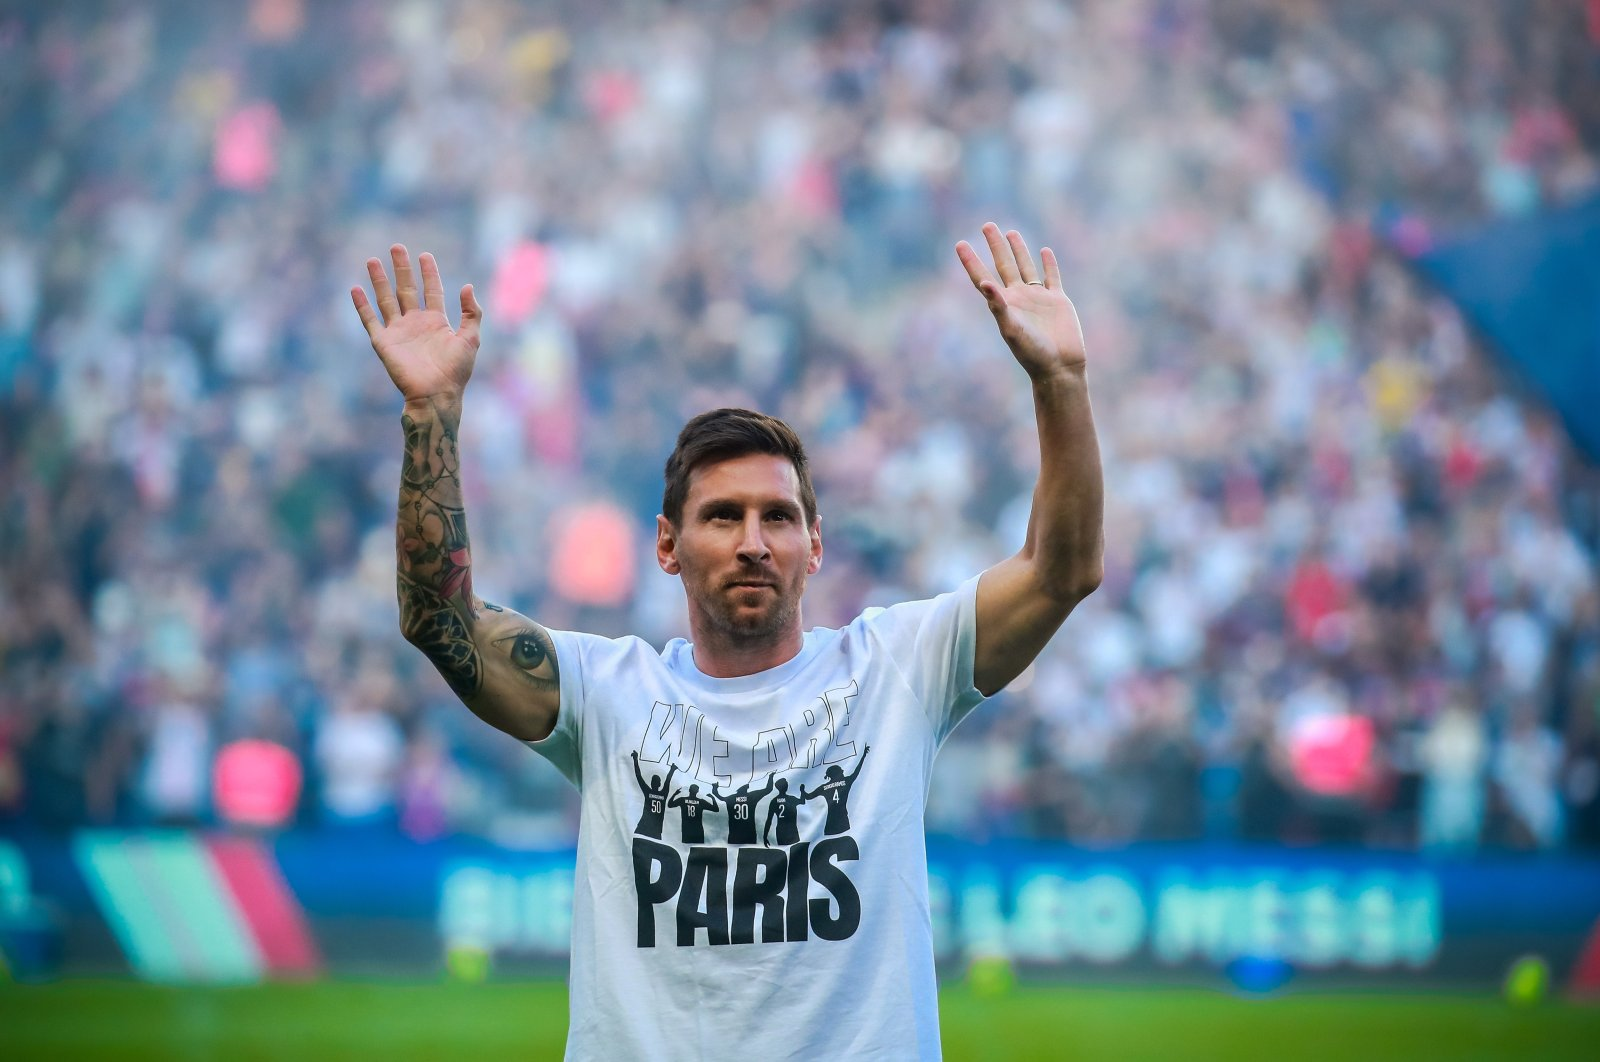 Paris Saint-Germain's Lionel Messi greets fans during the presentation of the new recruits prior to the French Ligue 1 match against Strasbourg at the Parc des Princes stadium, Paris, France, Aug. 14, 2021. (EPA Photo)